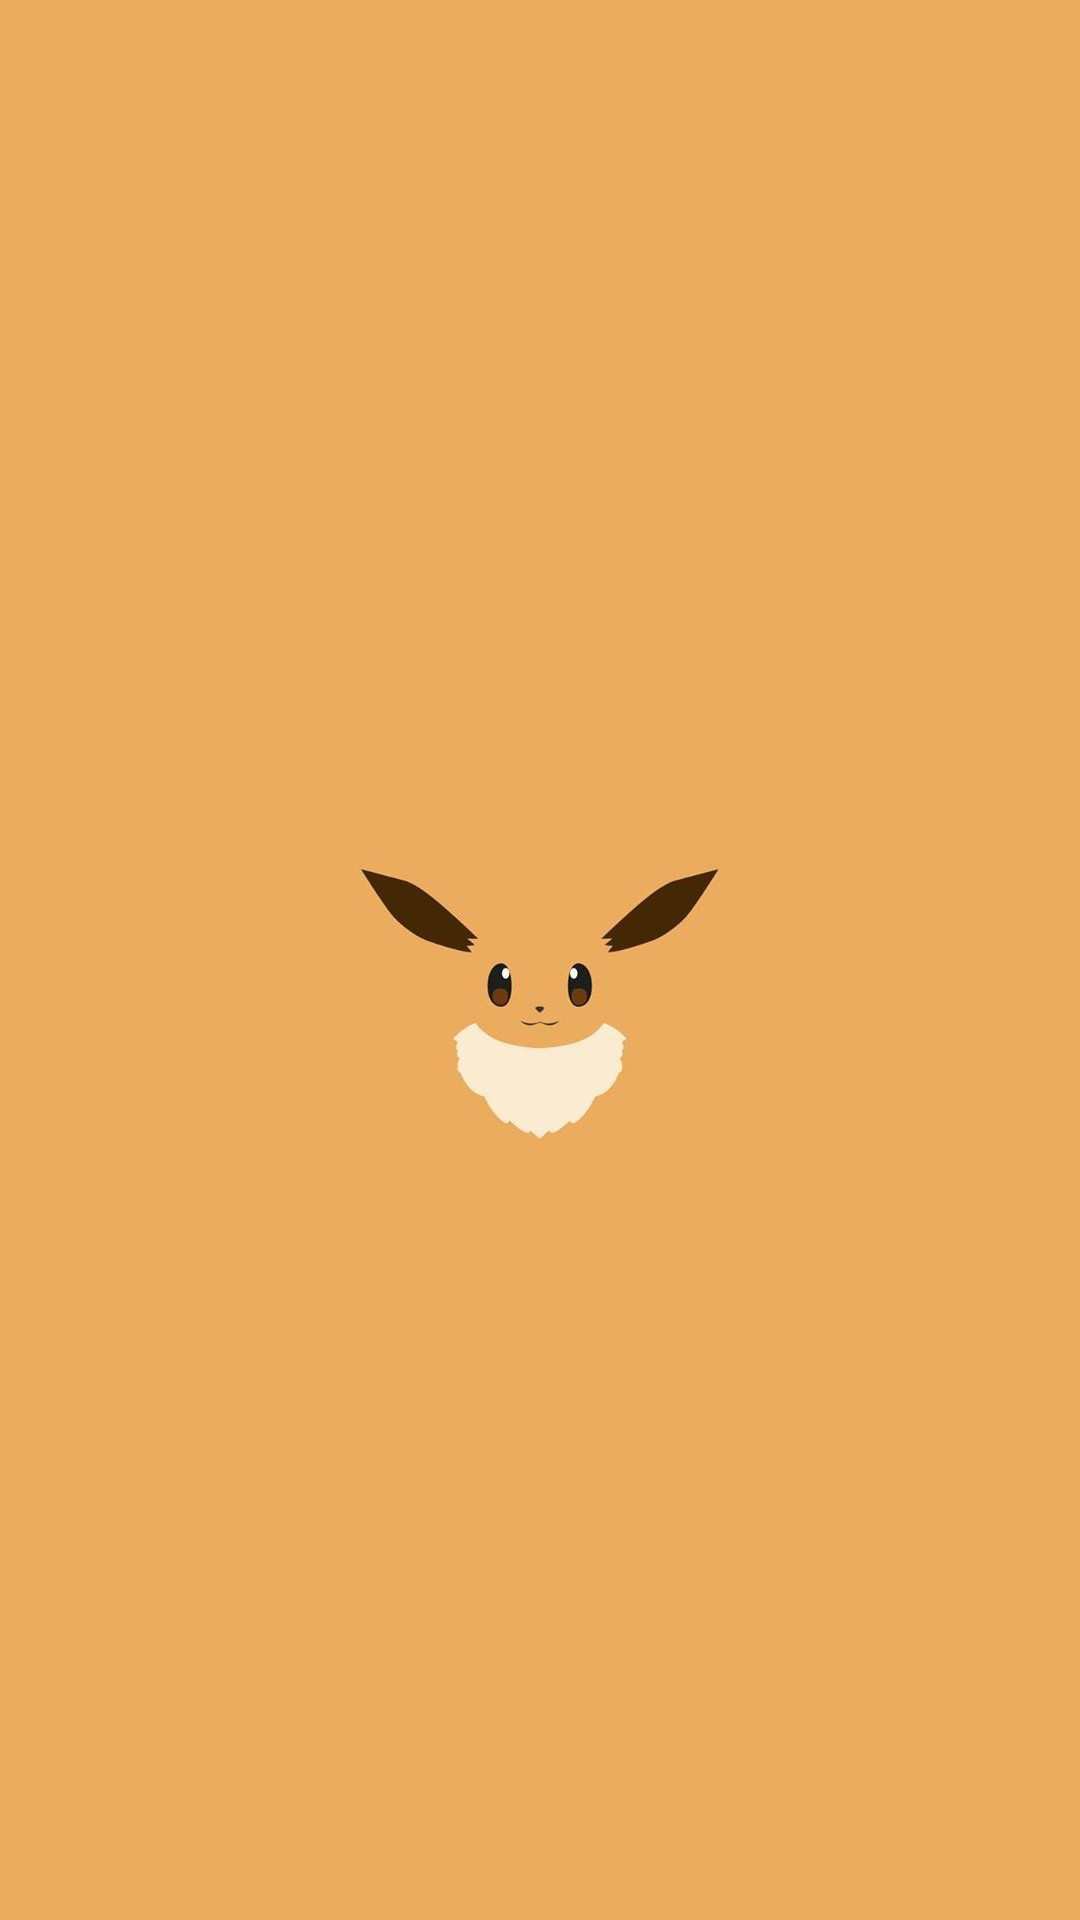 1080x1920 Eevee Pokemon Character iPhone 6+ HD Wallpaper - http://freebestpicture.com